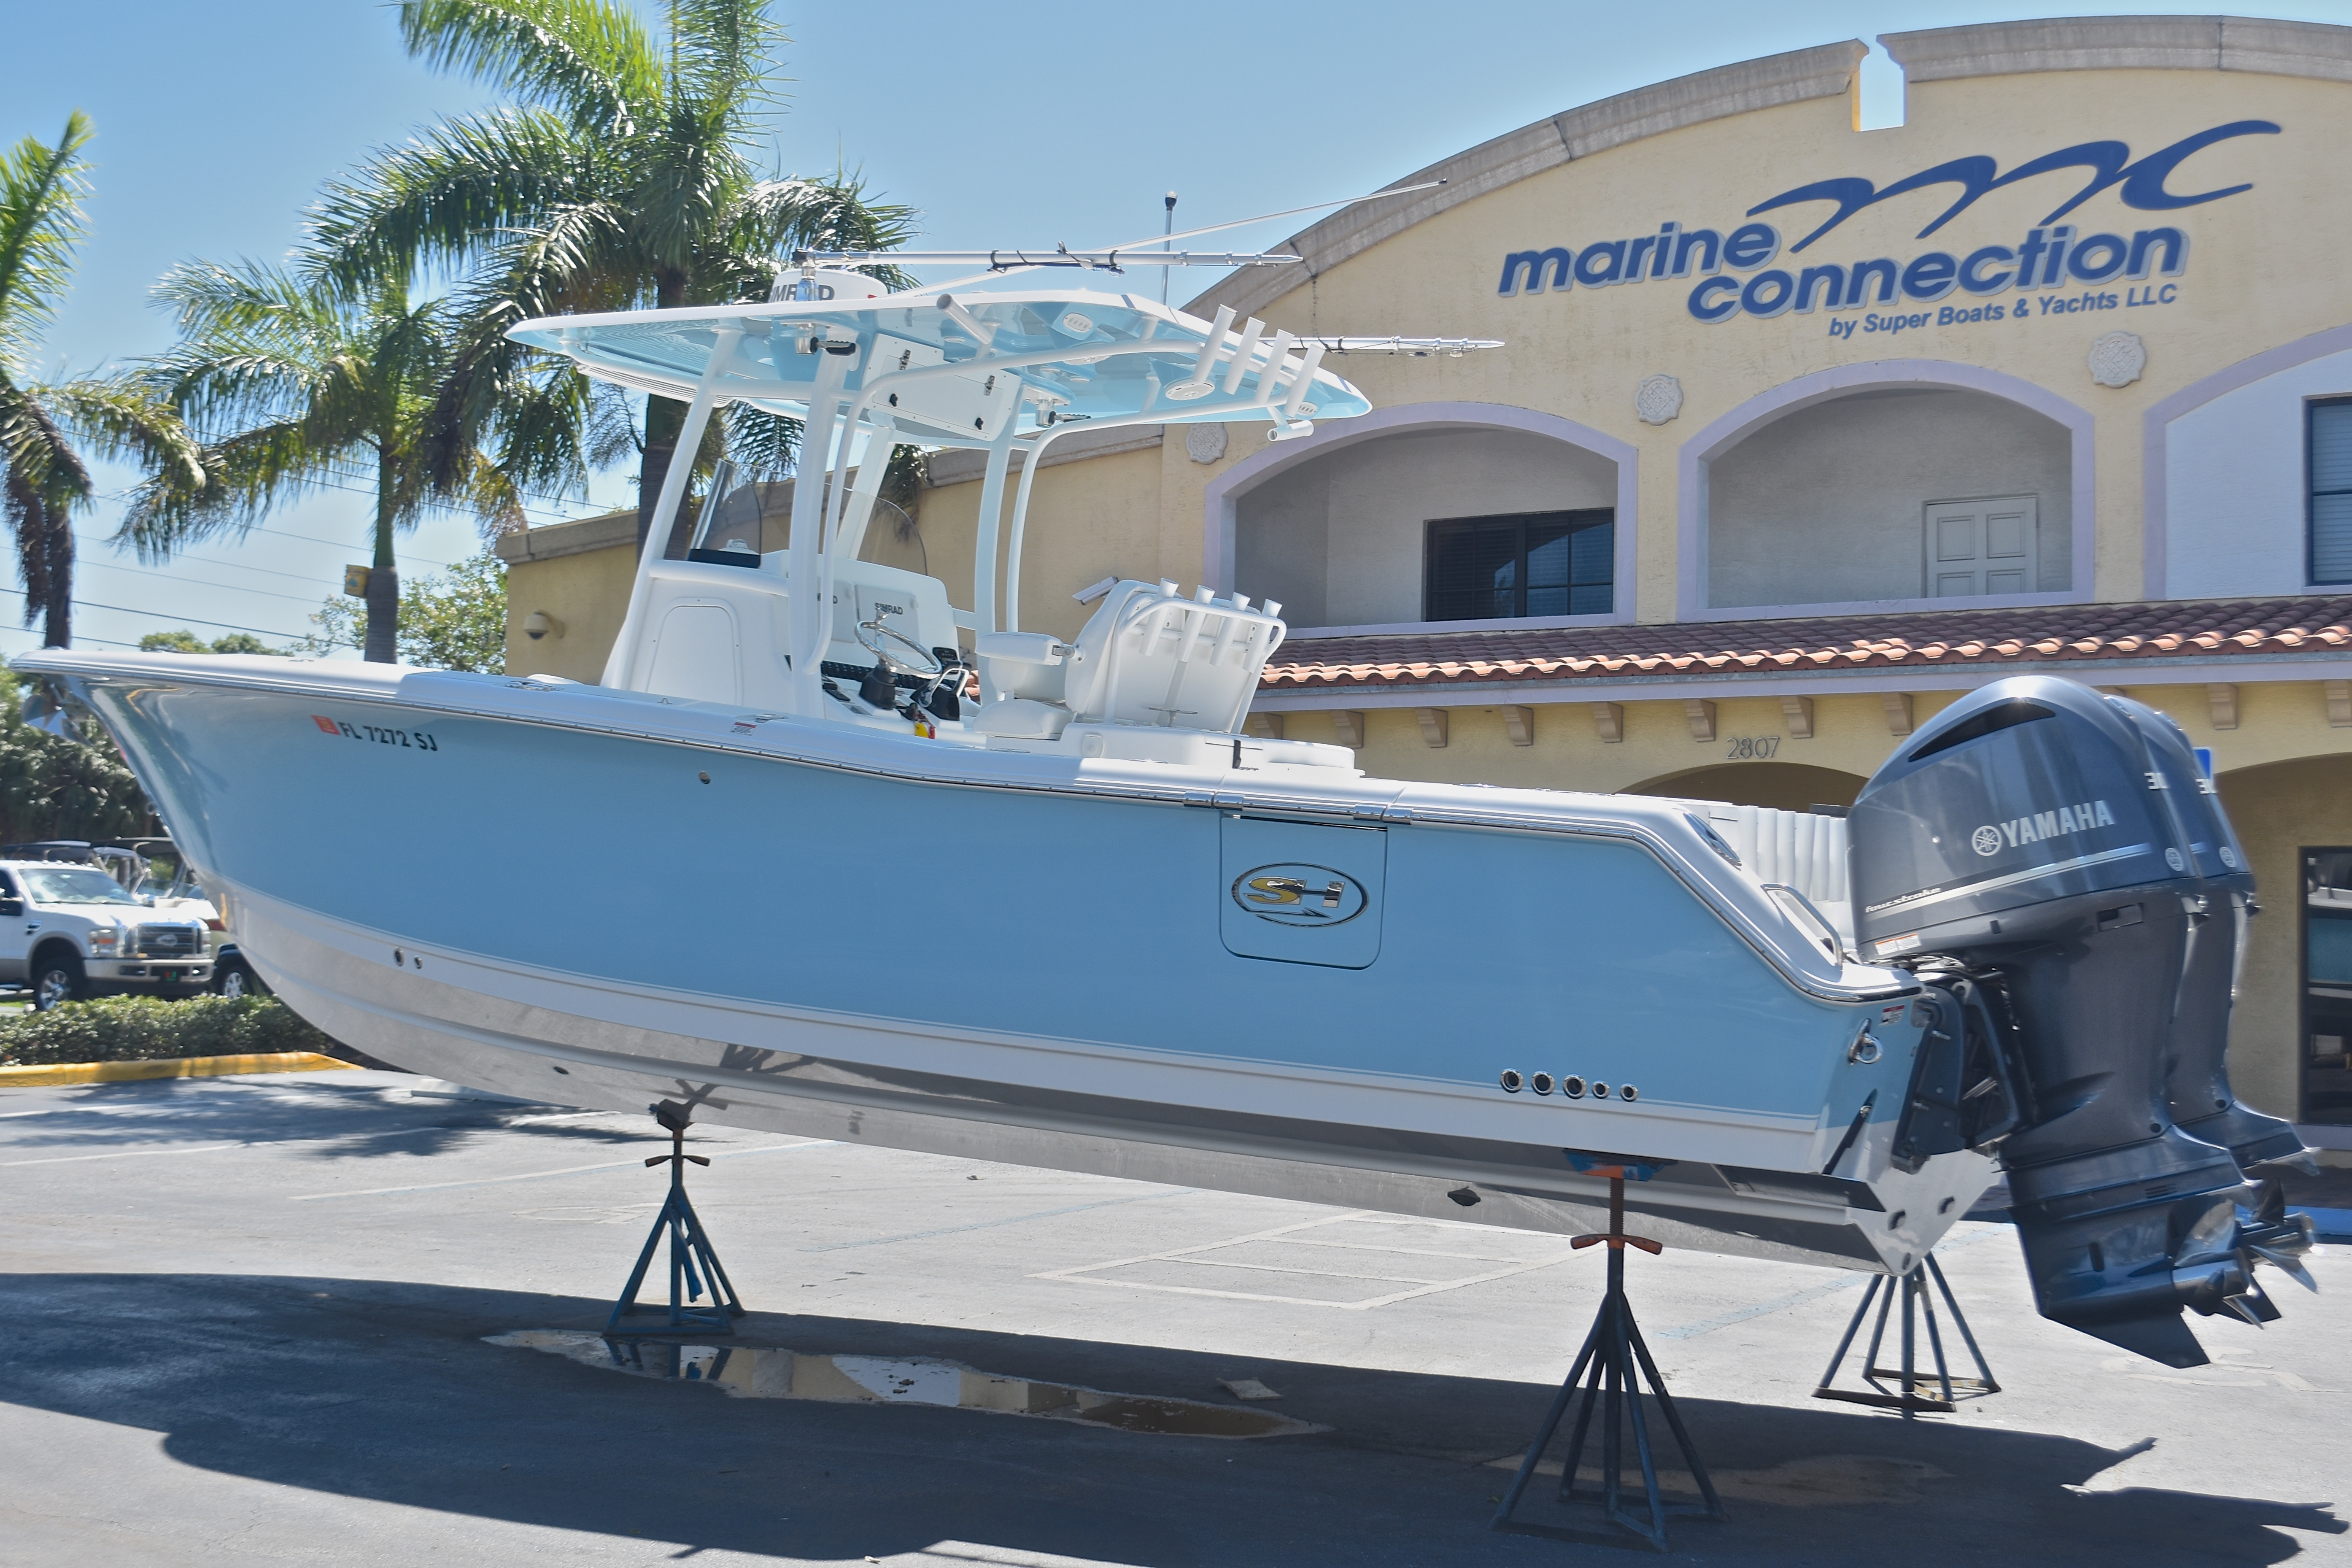 Thumbnail 1 for Used 2015 Sea Hunt Game Fish 30 Center Console boat for sale in West Palm Beach, FL